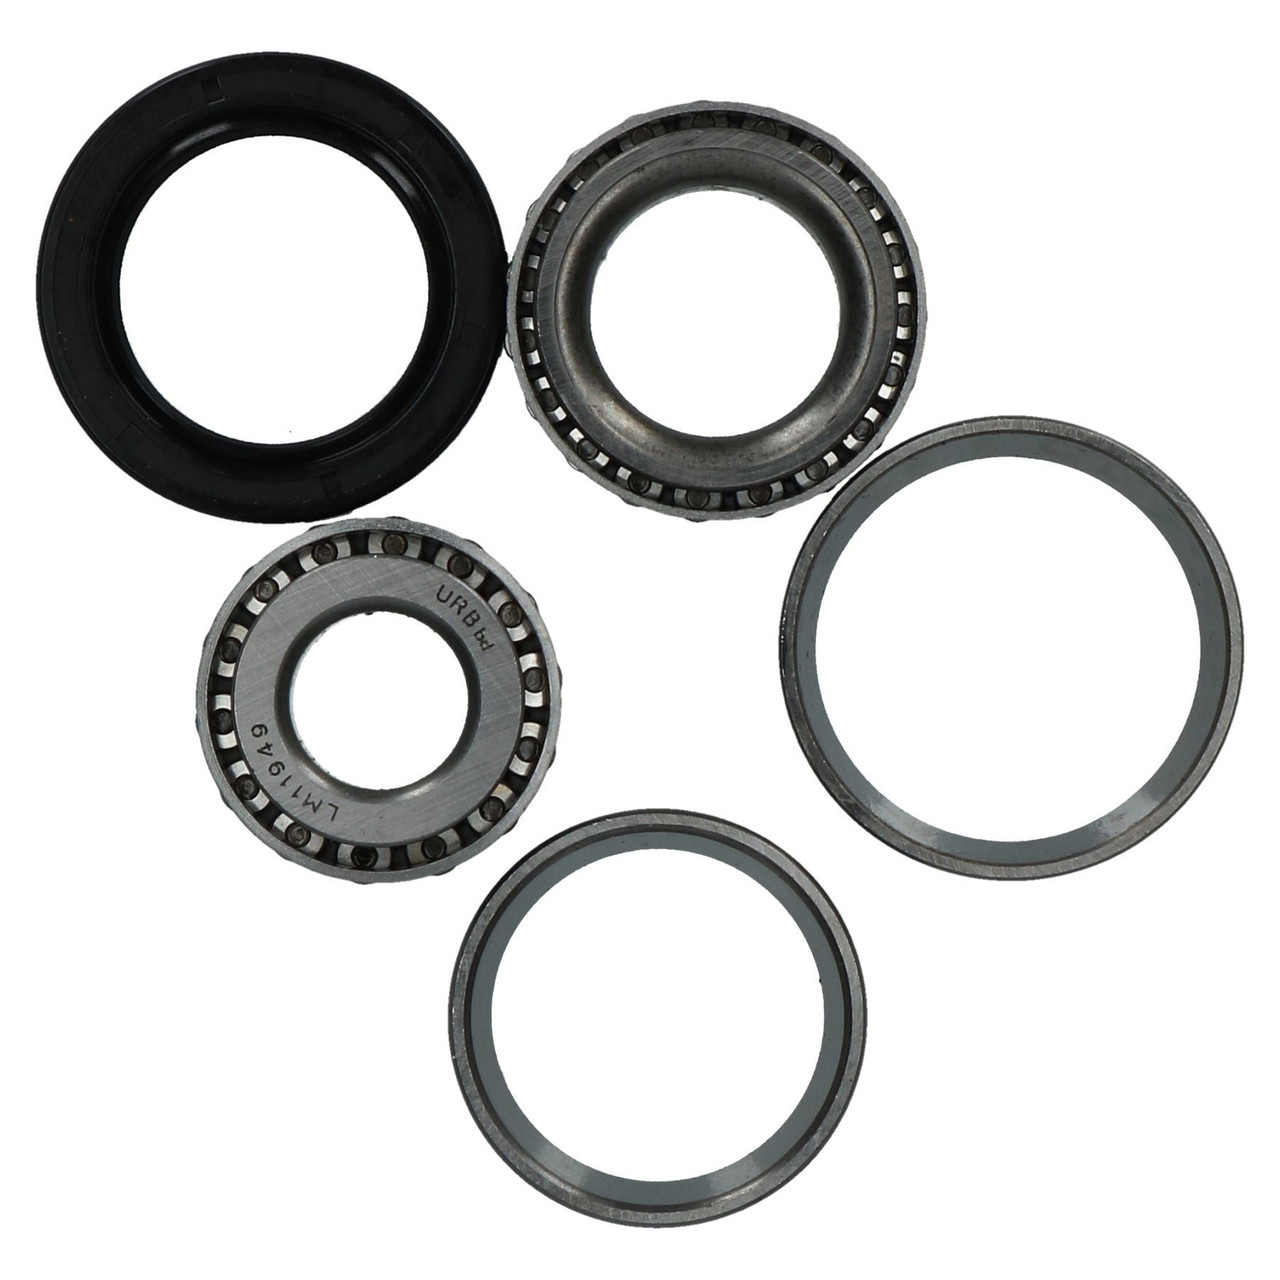 2 Trailer Taper Roller Bearing Kit Set for Meredith And Eyre 203mm x 40mm Drum